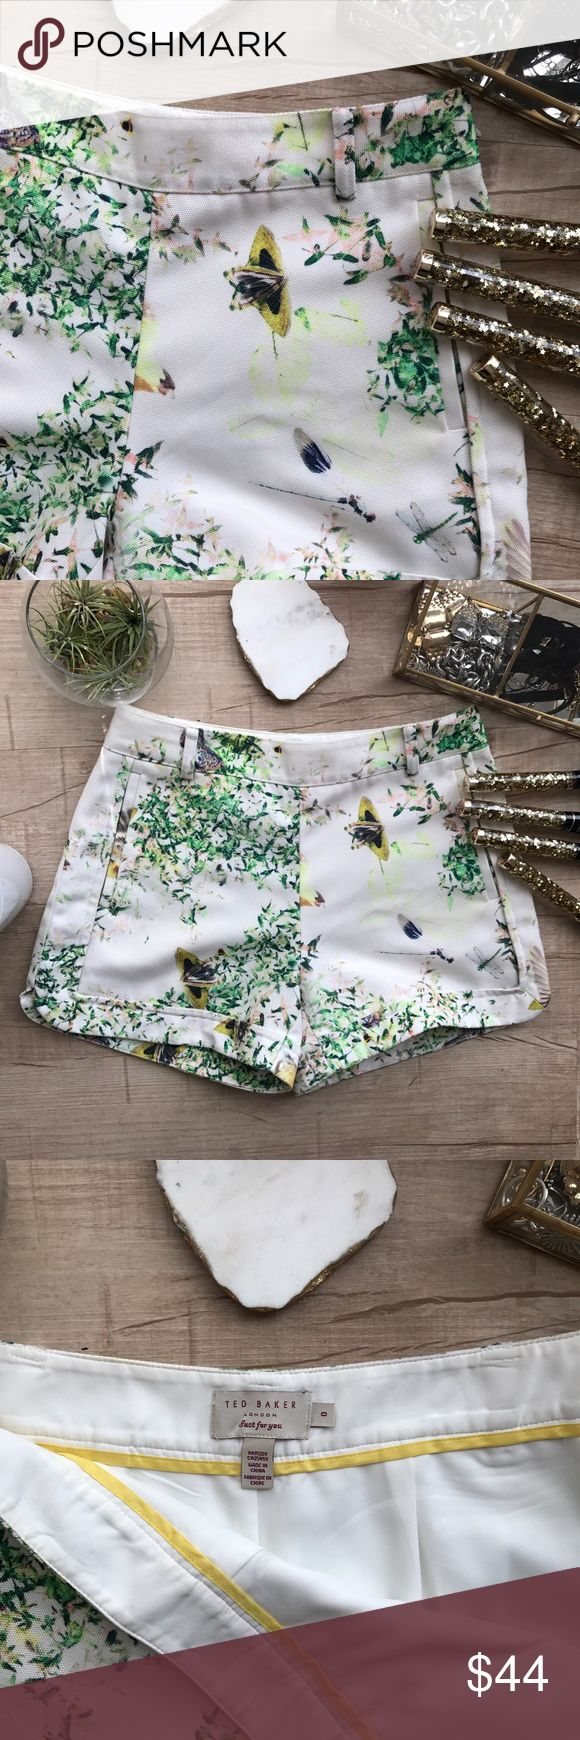 "Ted Baker Dancing Leaves Anora Print Short * adorable floral print  * off white with yellows & greens * material does not stretch  * waist - 14"" * length - 12.5"" * the two ""hanger strings"" have been cut out Ted Baker Shorts"